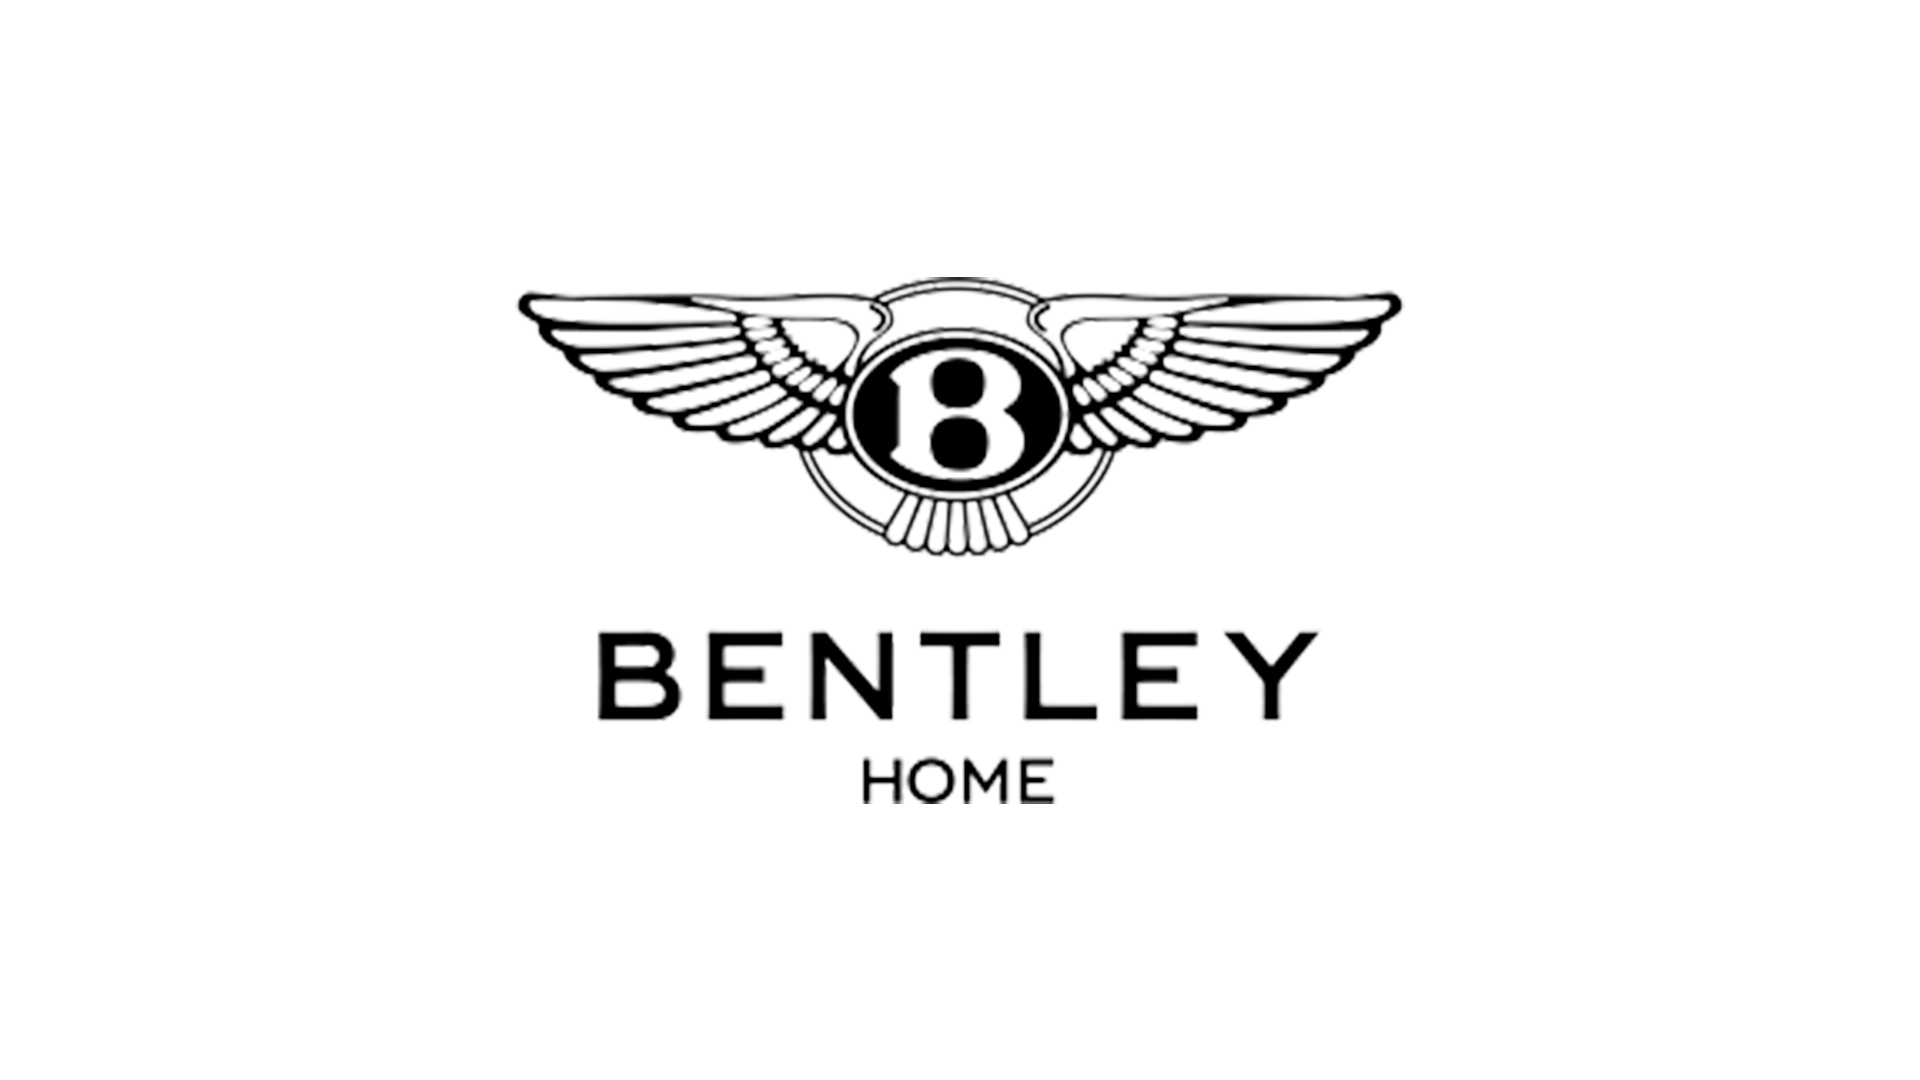 Bentley Home